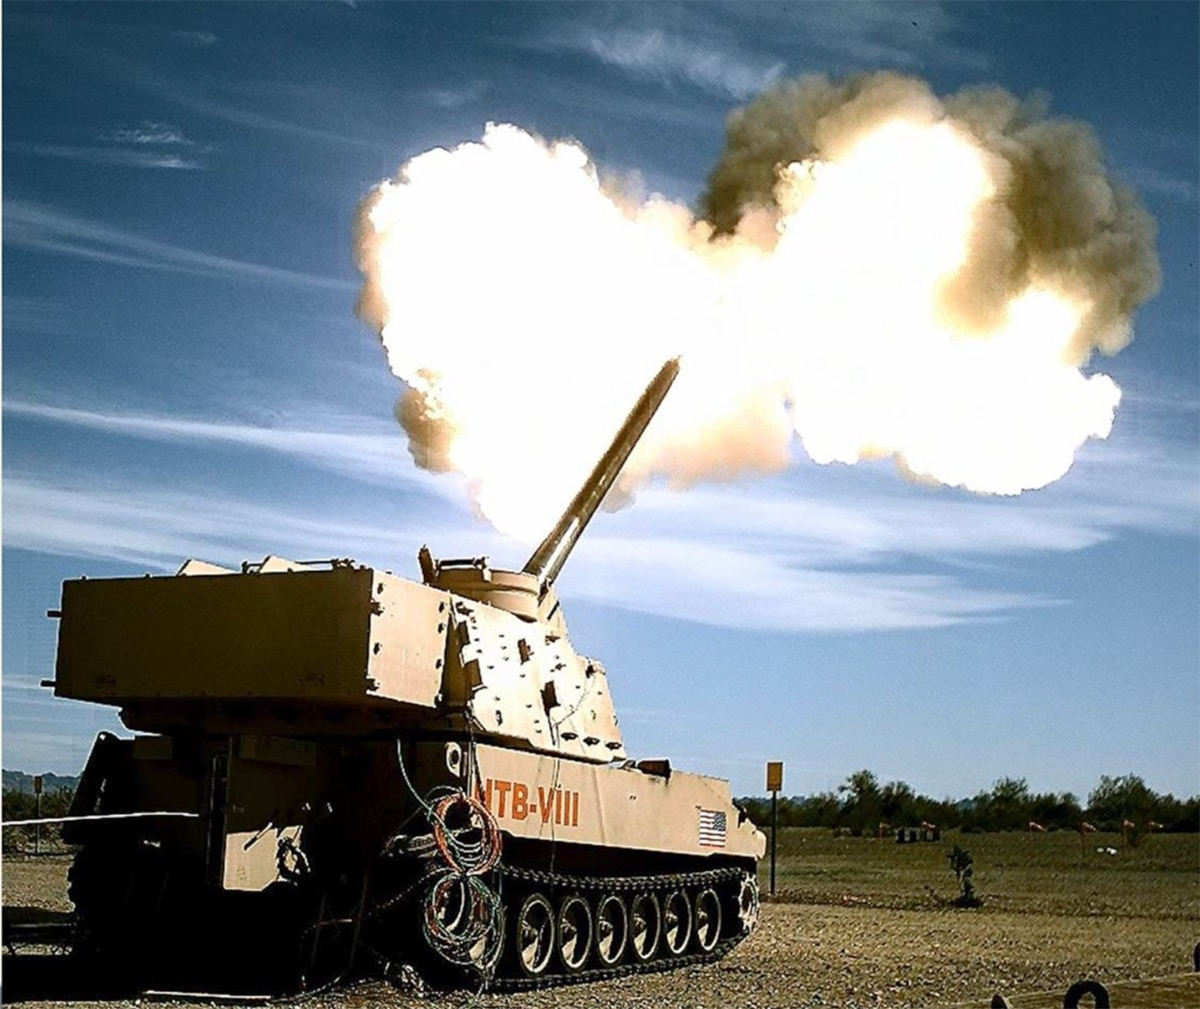 Army artillery is doubling range and fire rates, working on